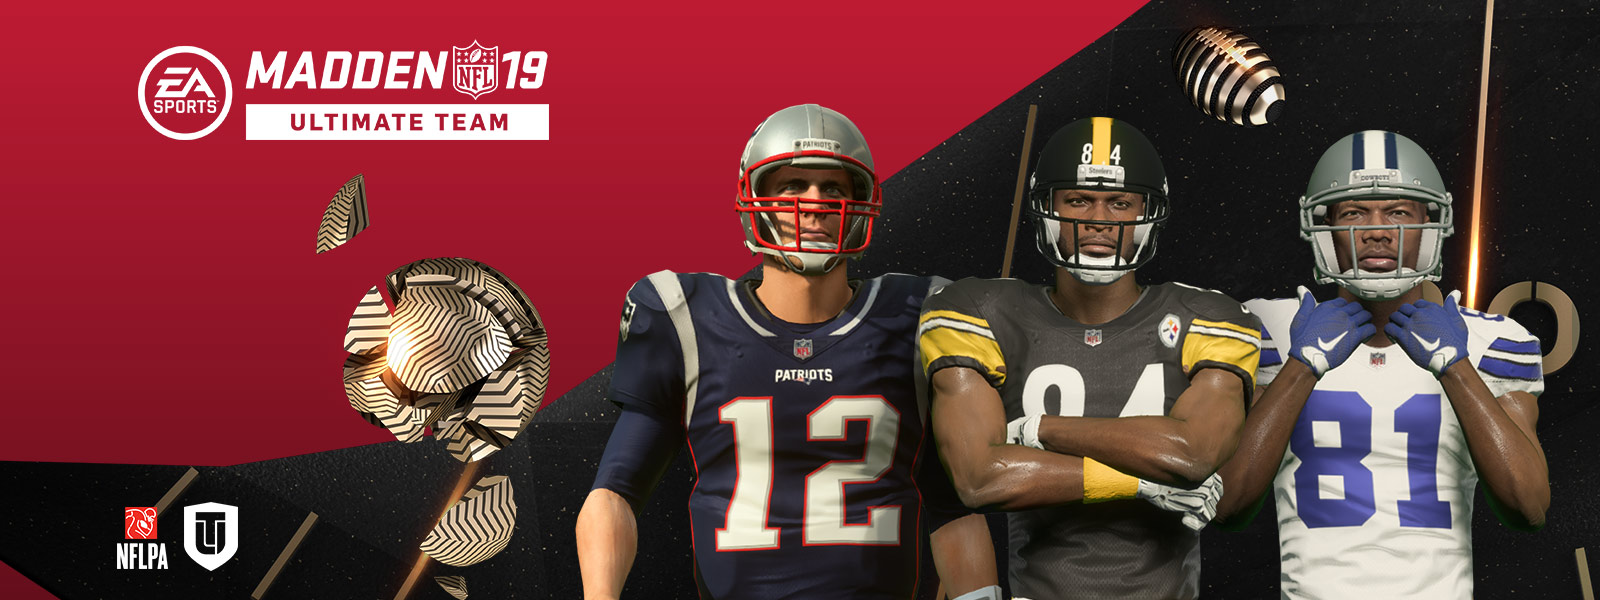 Madden NFL 19 Ultimate Team, vooraanzicht van Tom Brady, Antonio Brown, en Terrell Owens